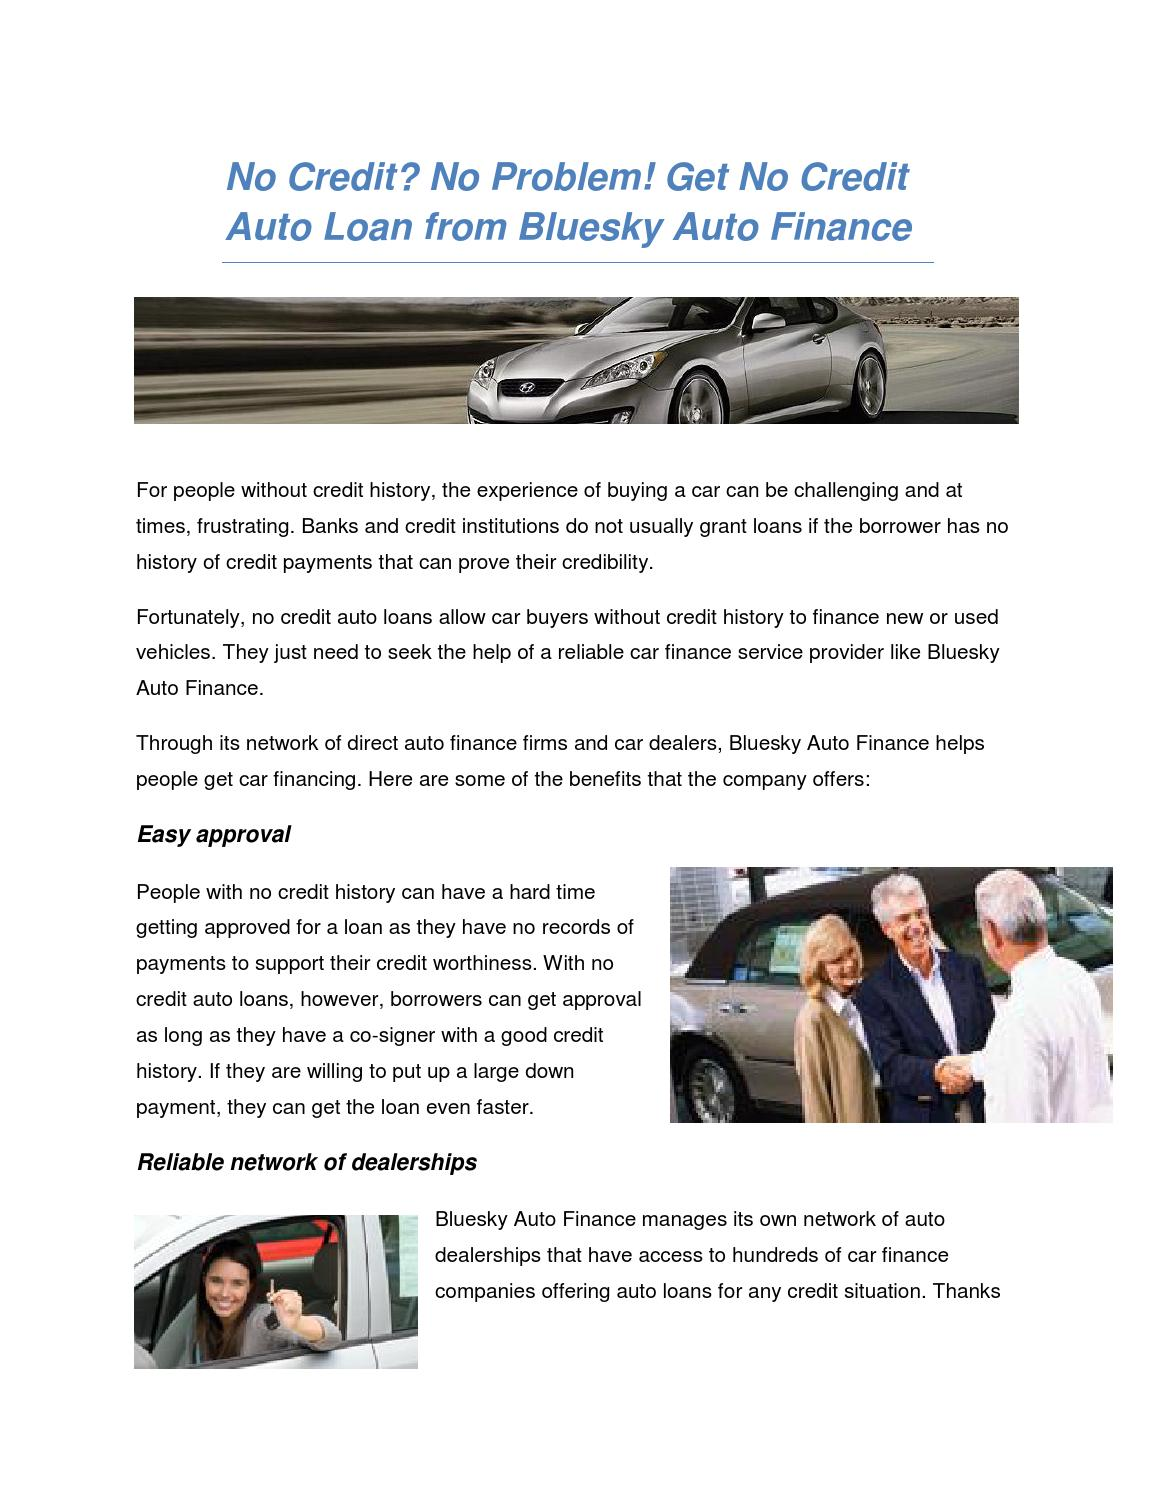 Direct auto loans